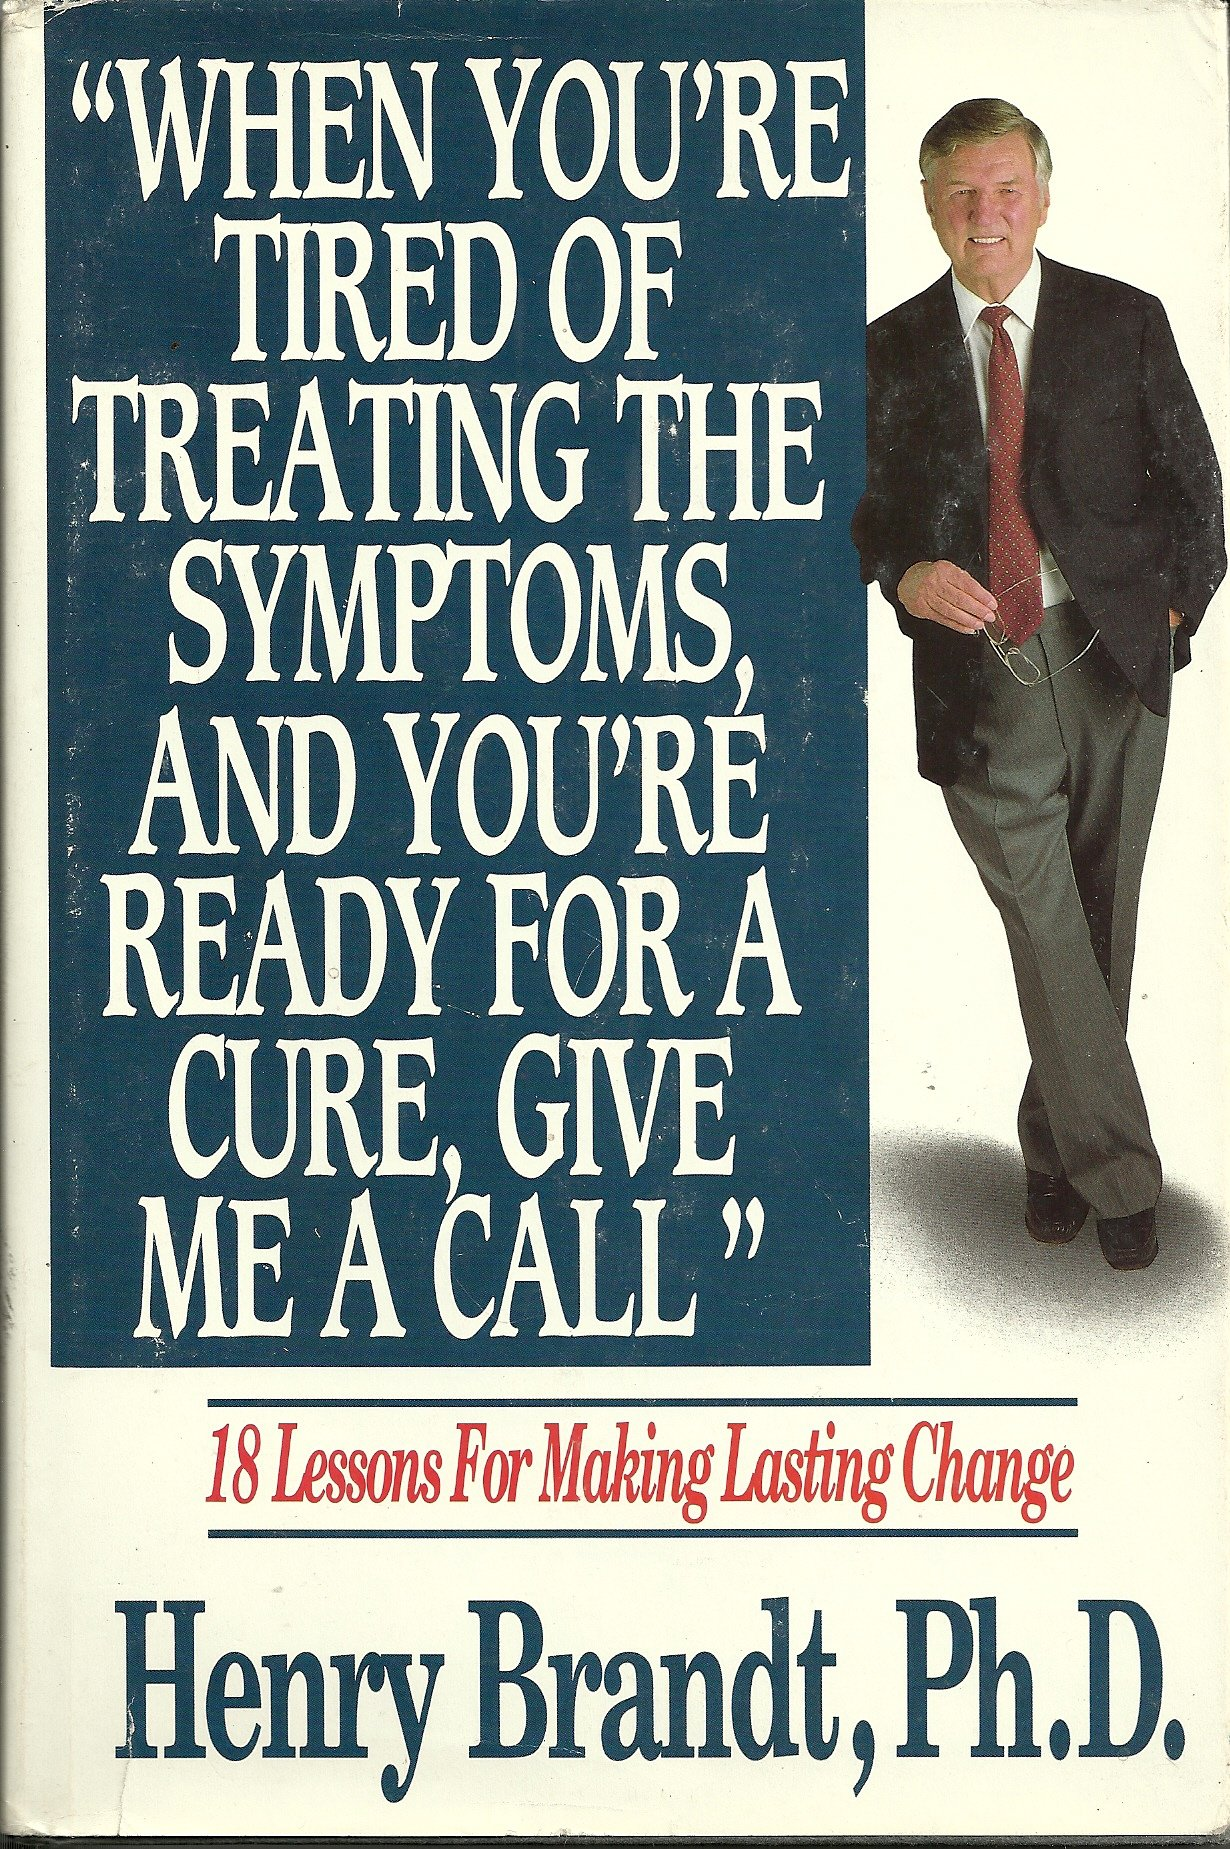 Can you give me the cure